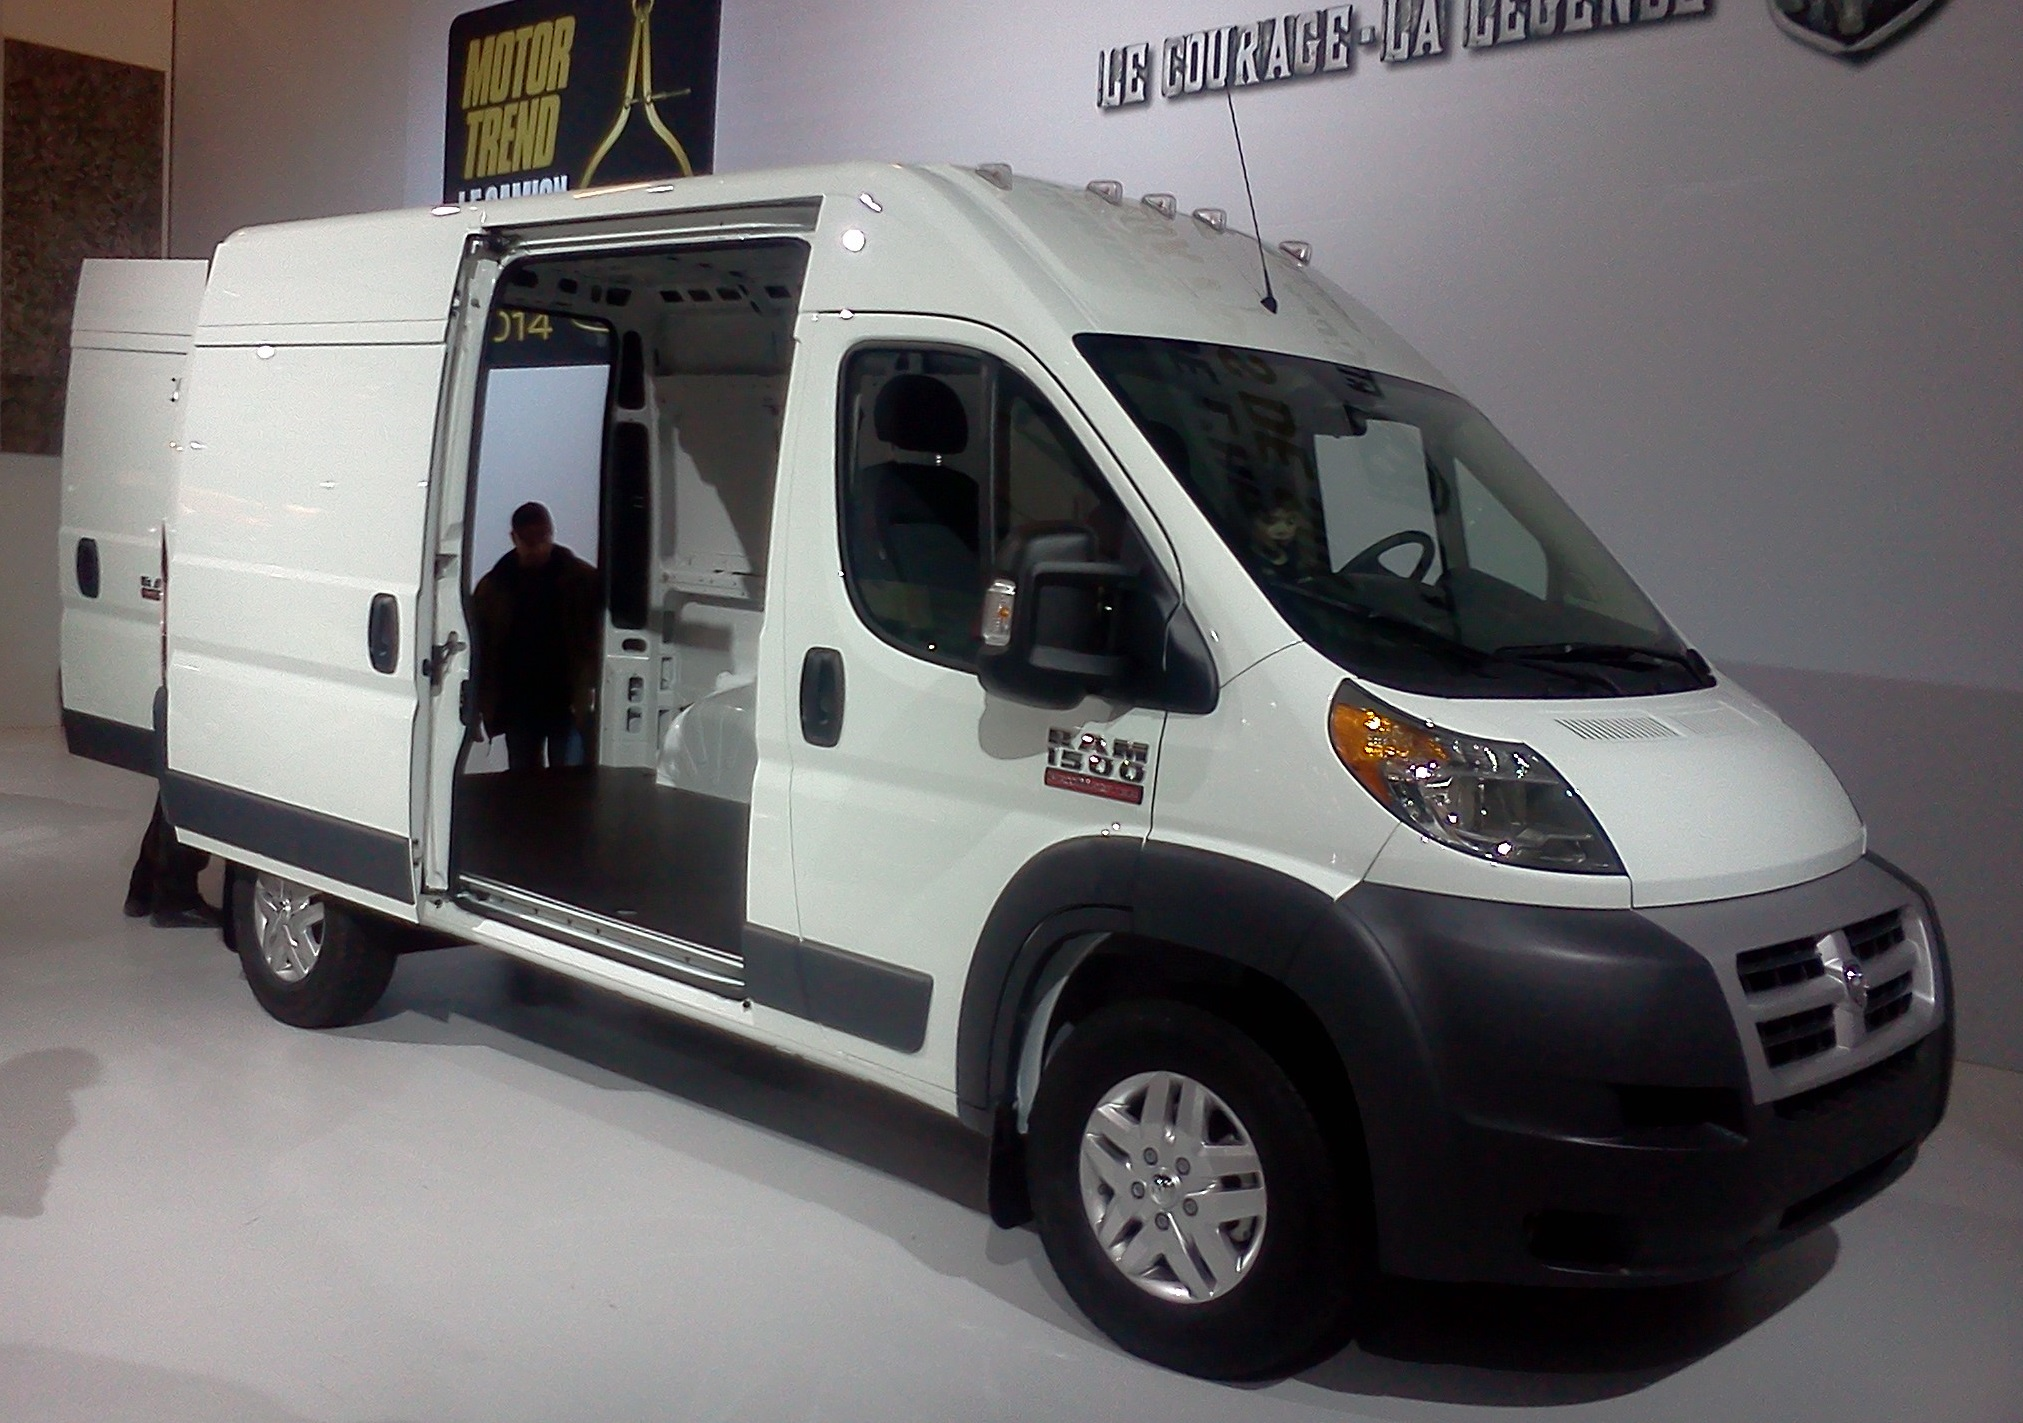 file 2014 ram promaster 1500 high roof mias 39 14 jpg wikimedia commons. Black Bedroom Furniture Sets. Home Design Ideas